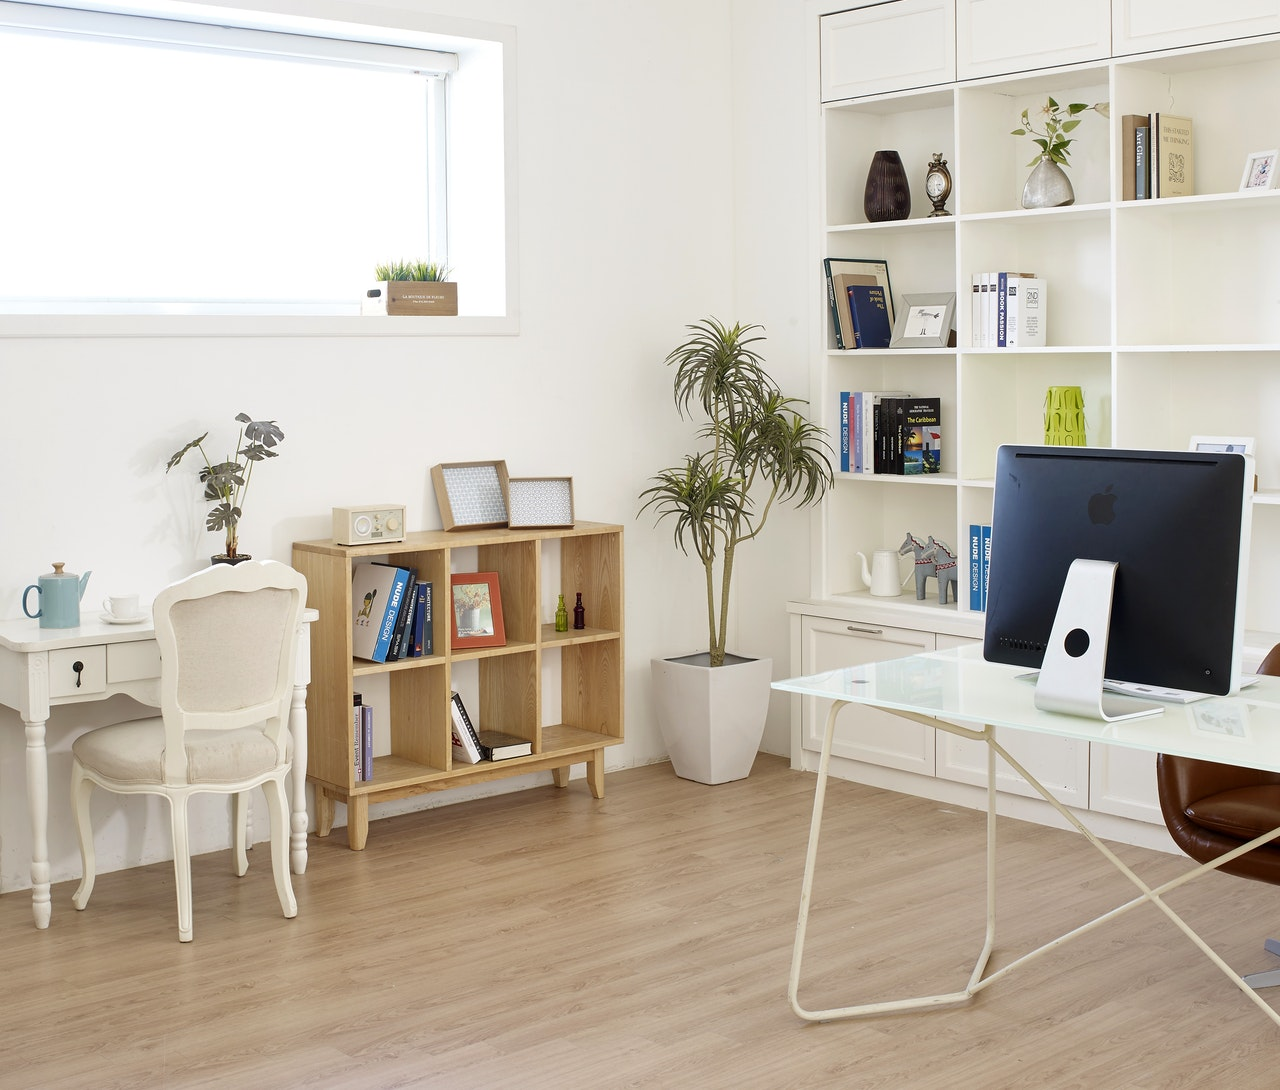 Top 10 Furniture Home Decor Stores In Singapore Tallypress